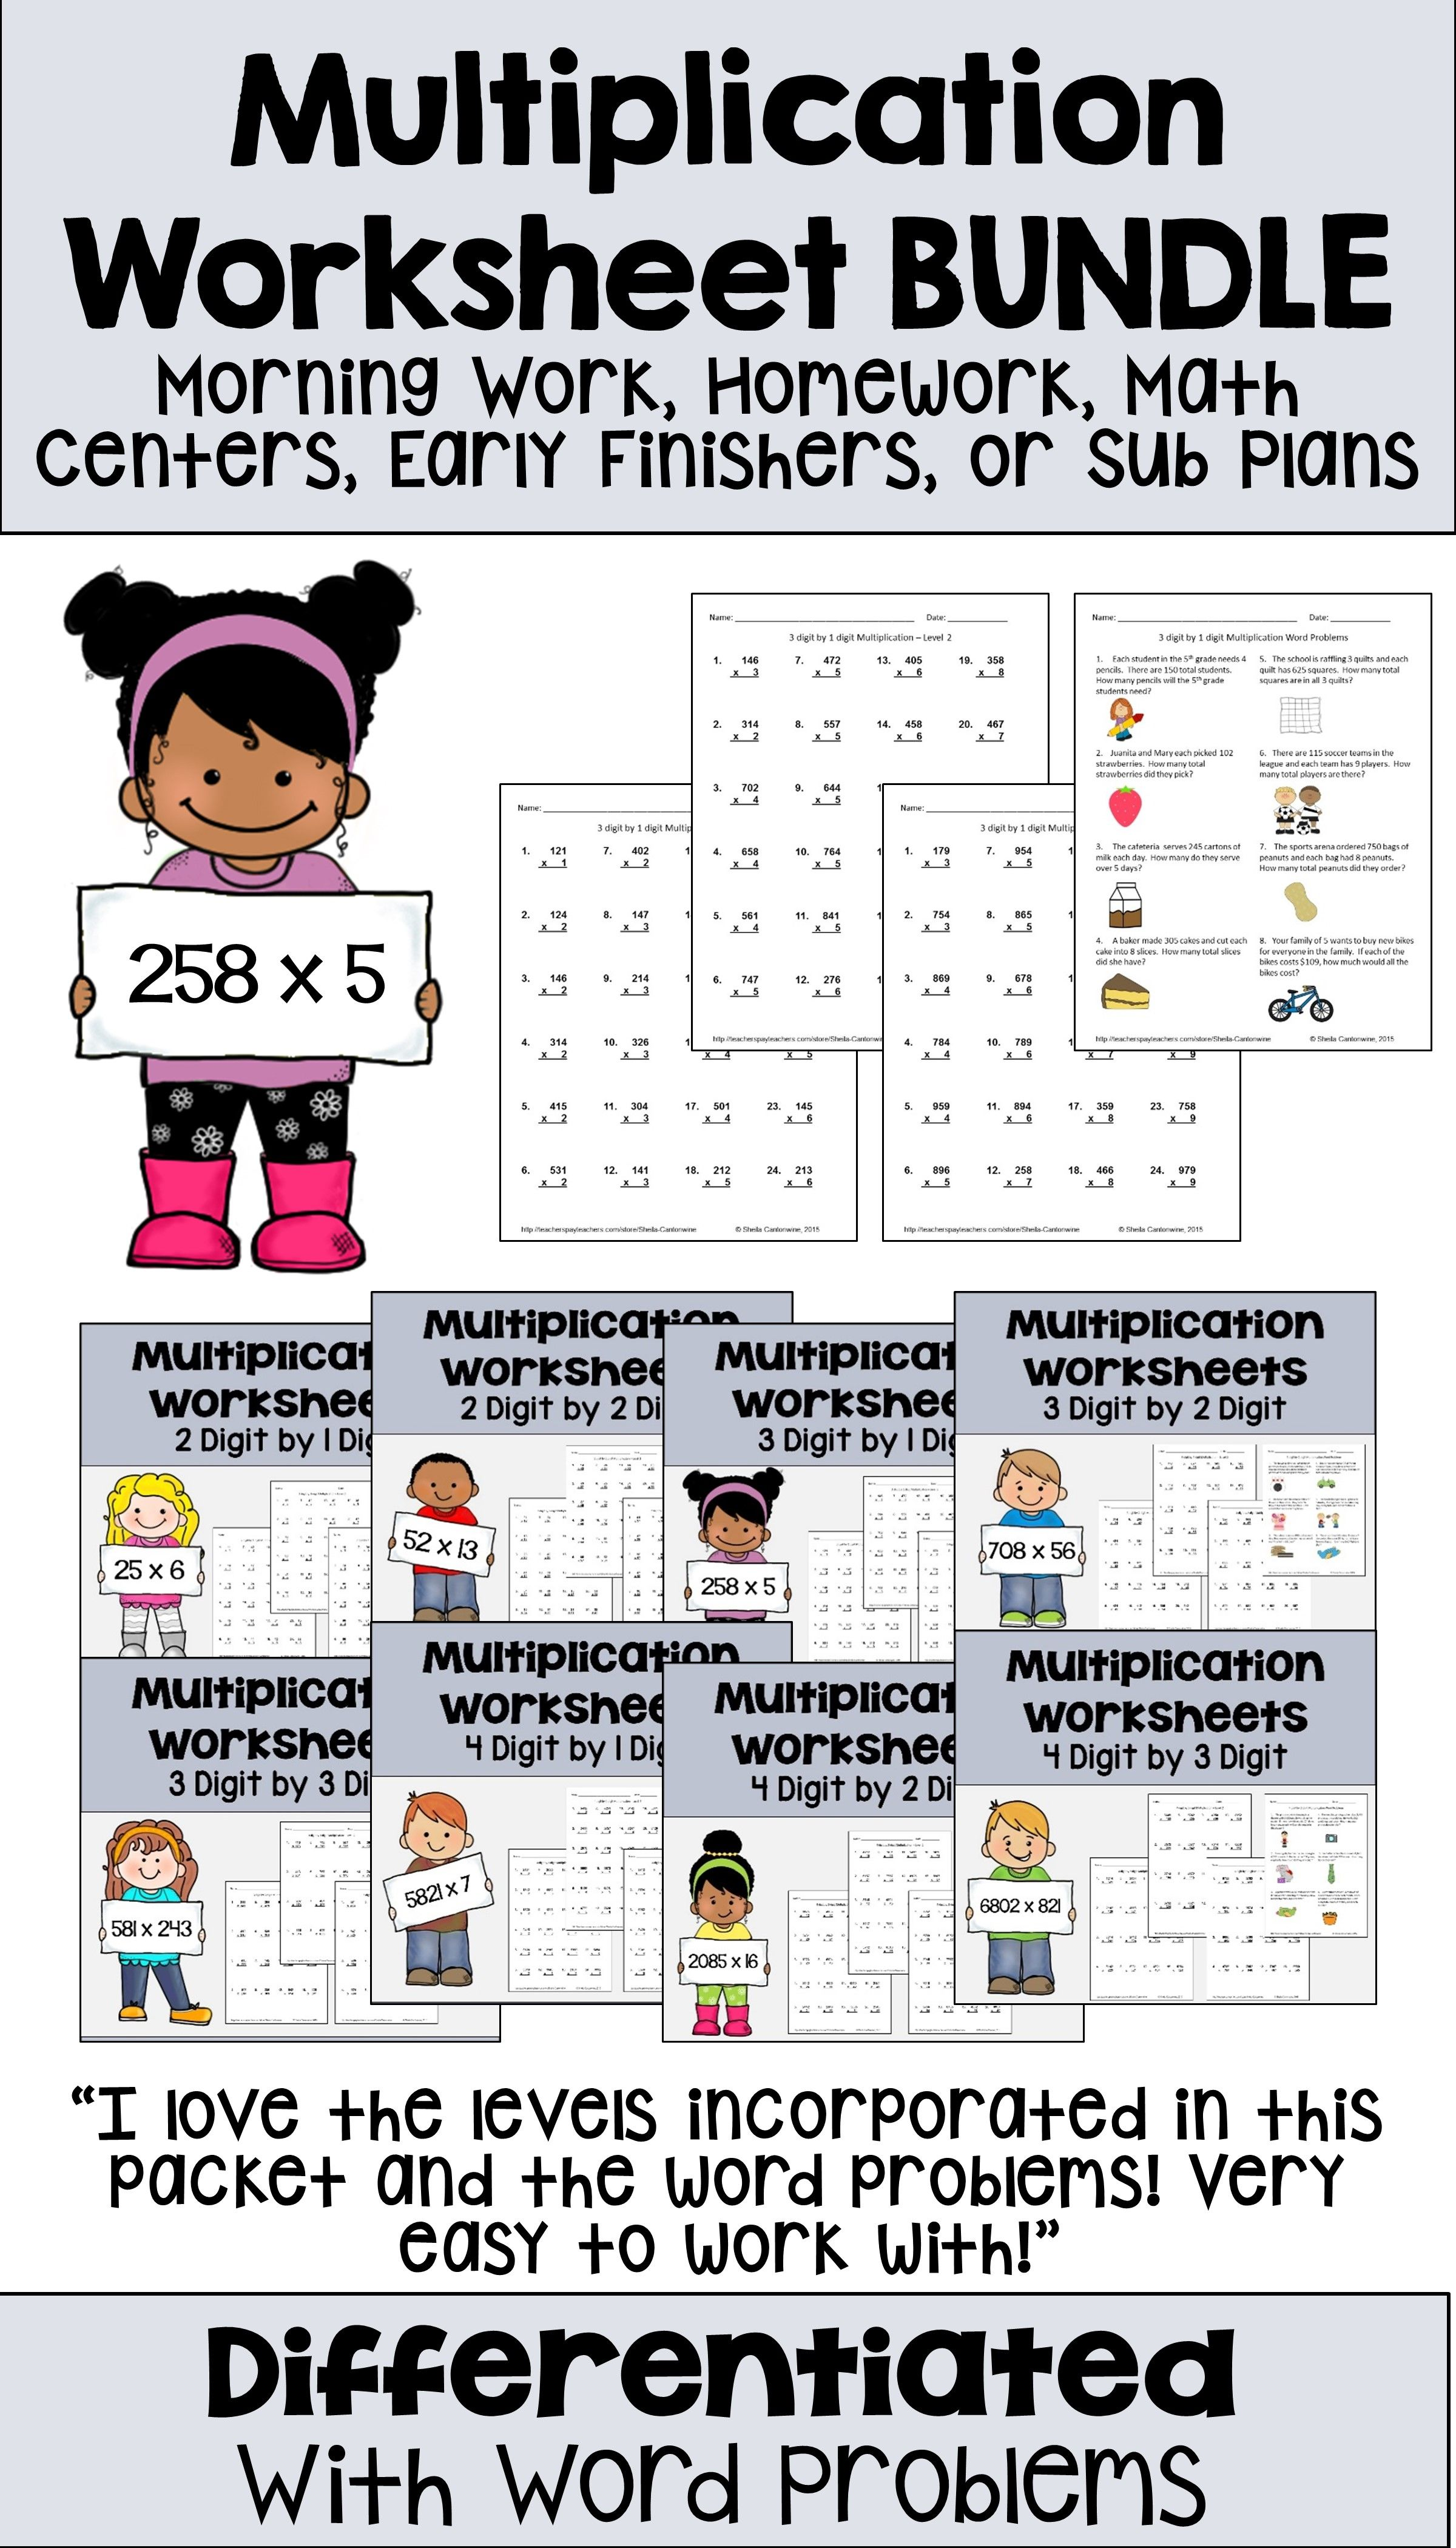 Multiplication Worksheet Bundle Differentiated